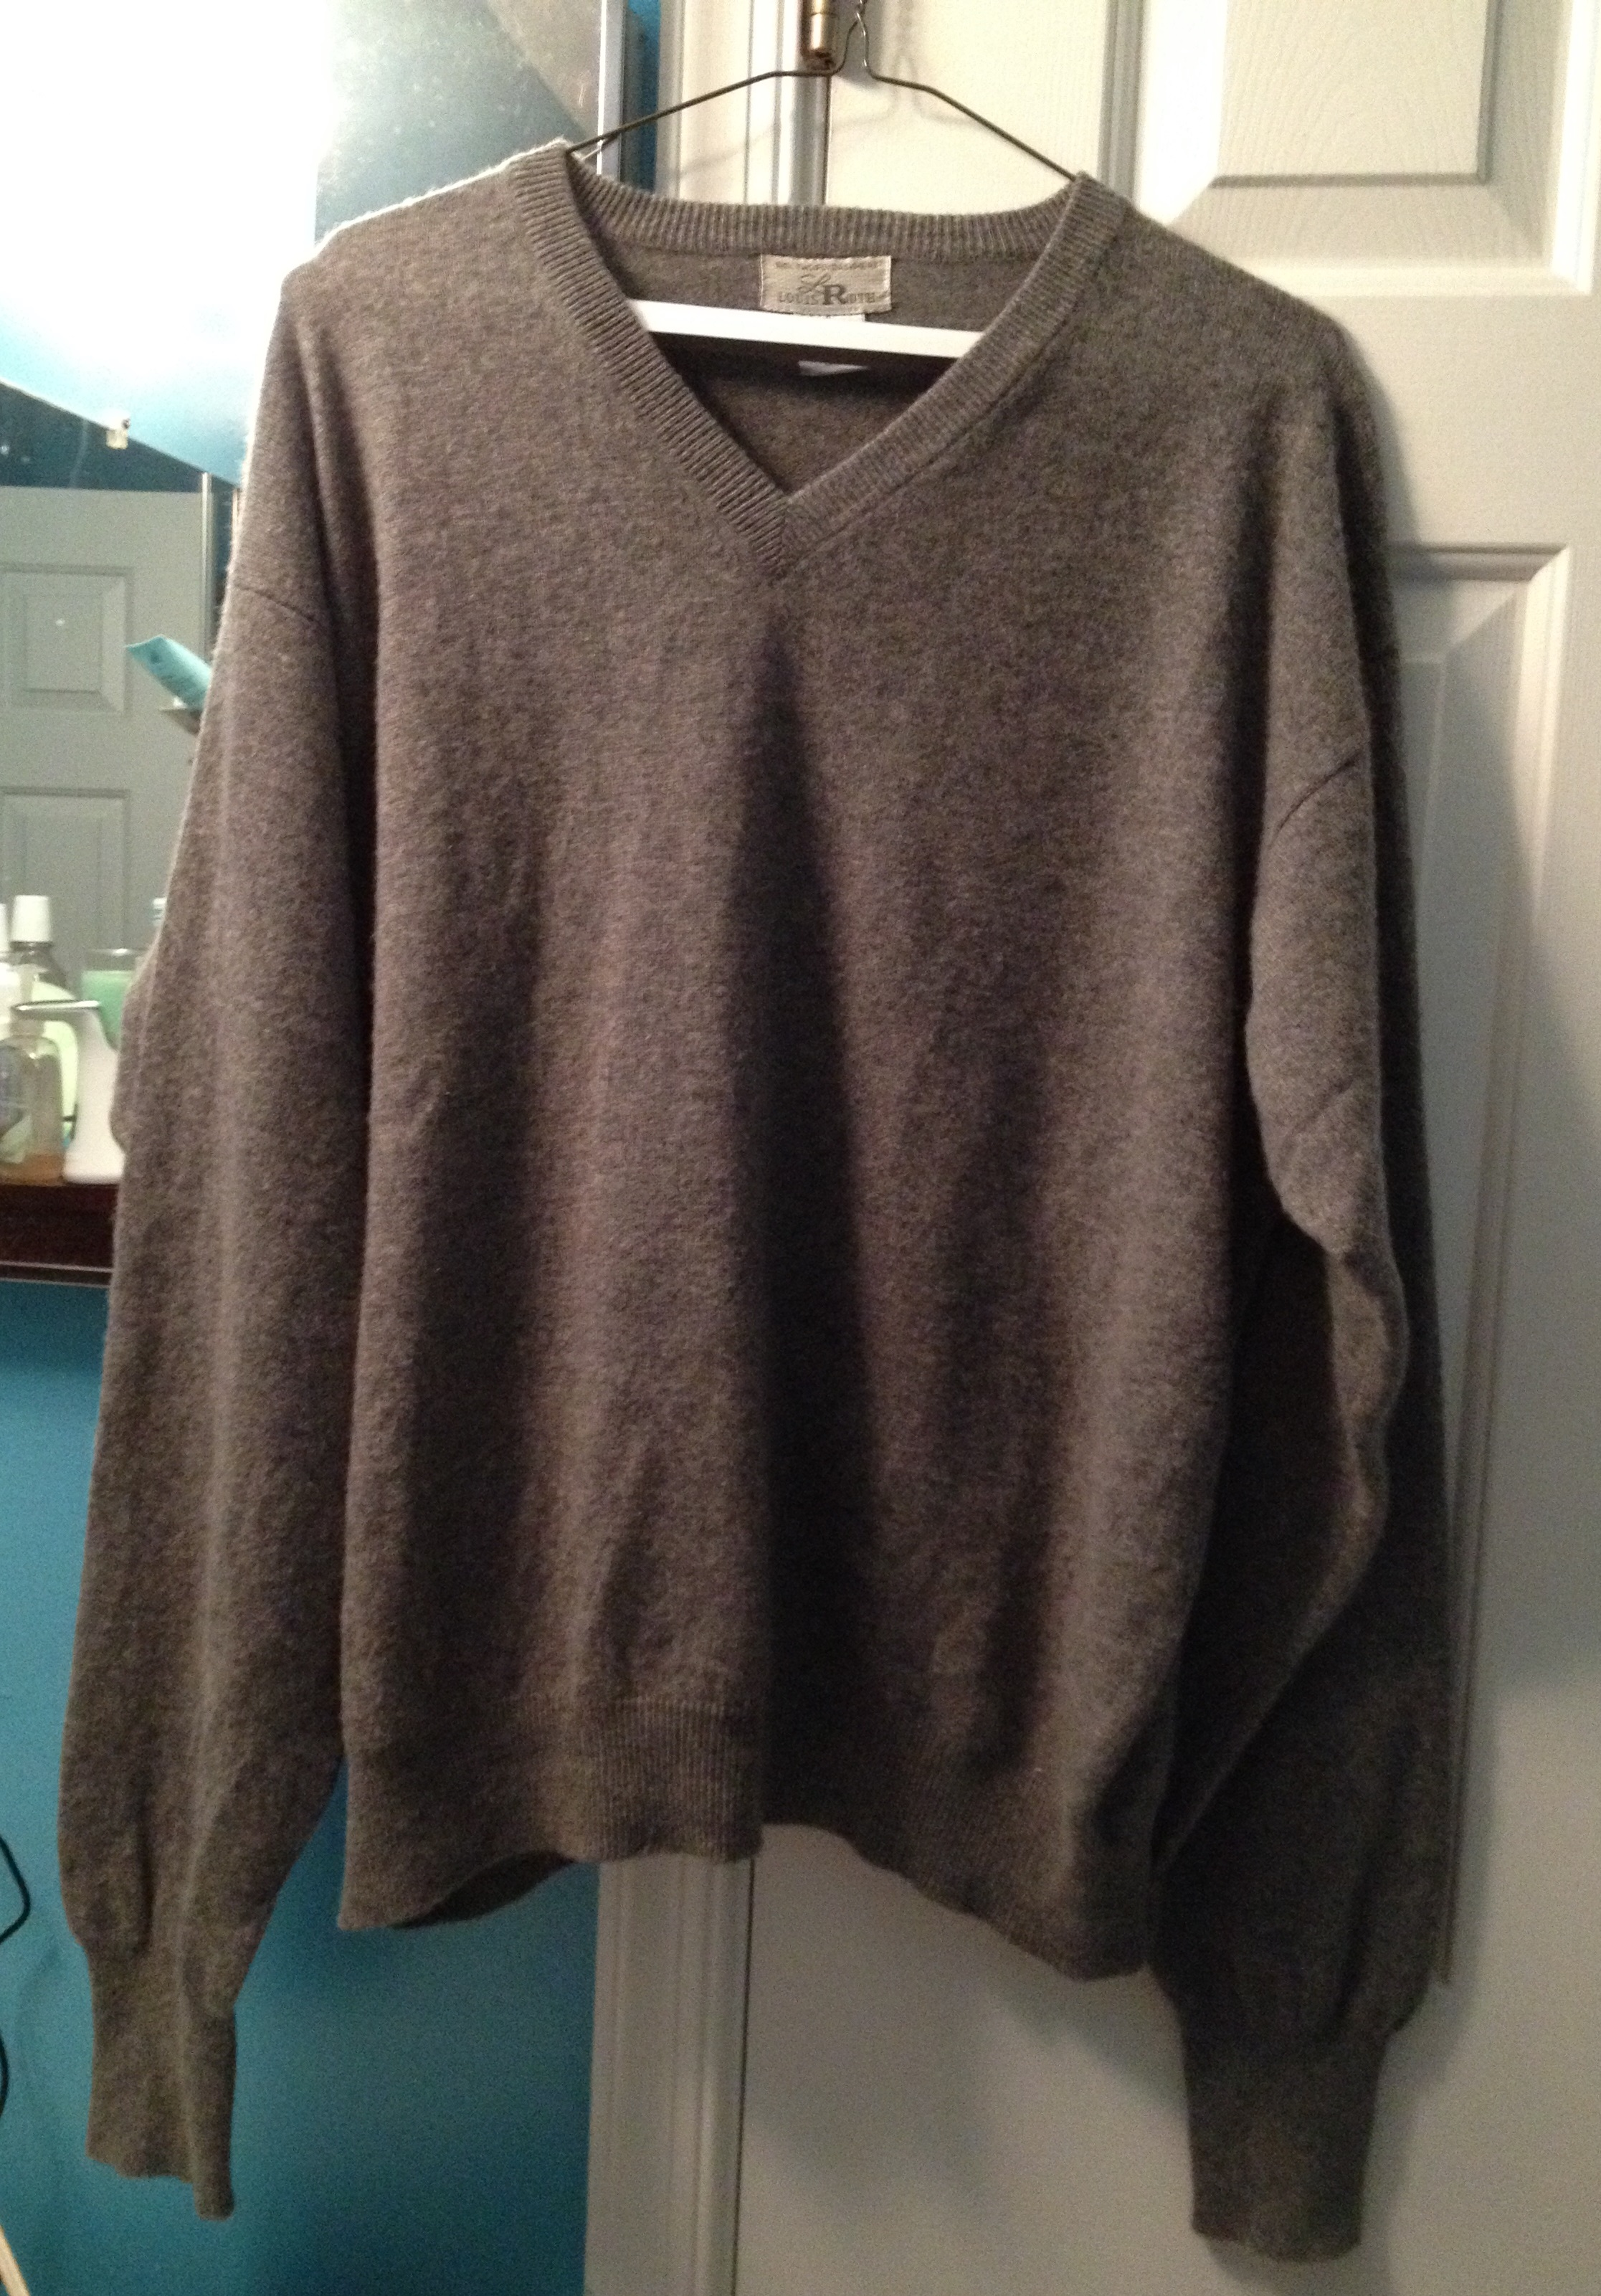 Mend and Make Do: Repairing Small Moth Holes in a Cashmere